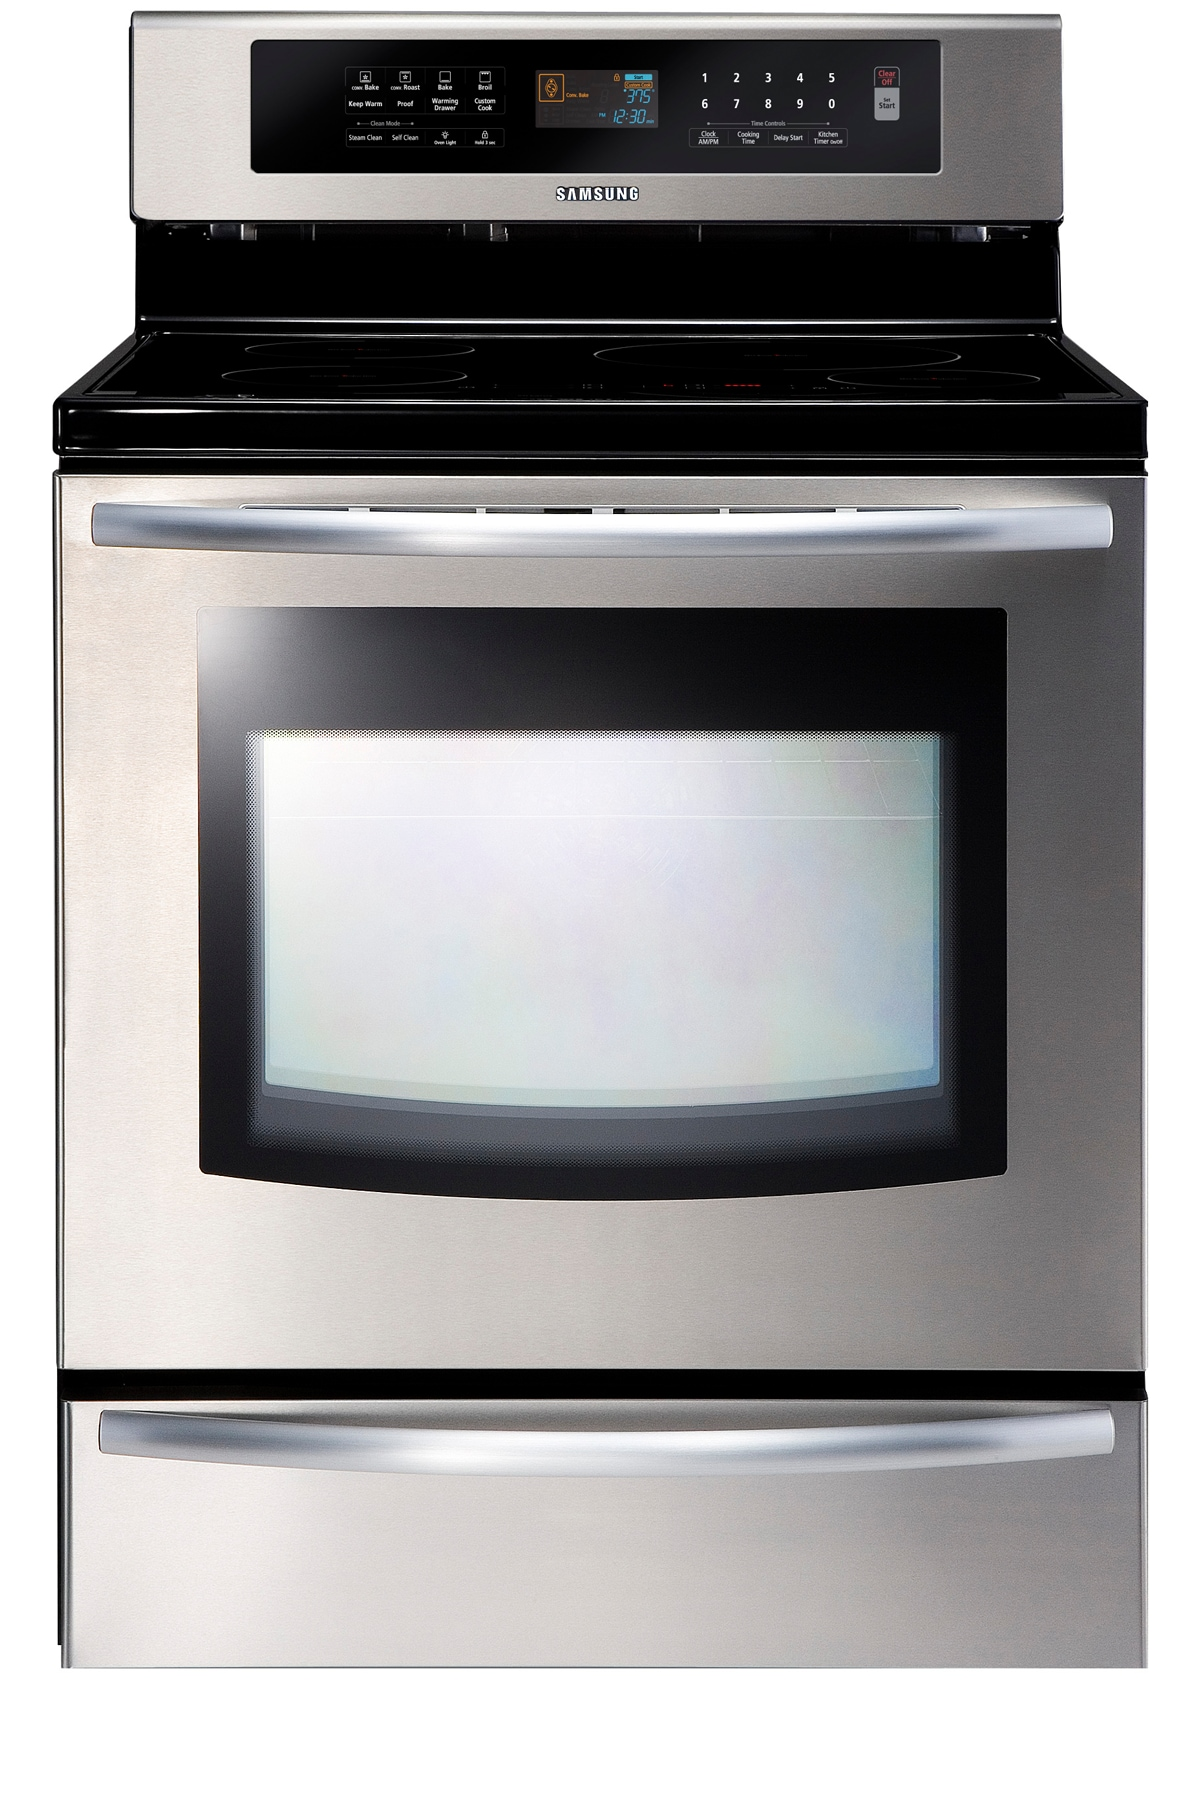 induction oven ftq307nwgx samsung support ca rh samsung com Samsung Refrigerator Troubleshooting Guide Samsung Phones Owner's Manual